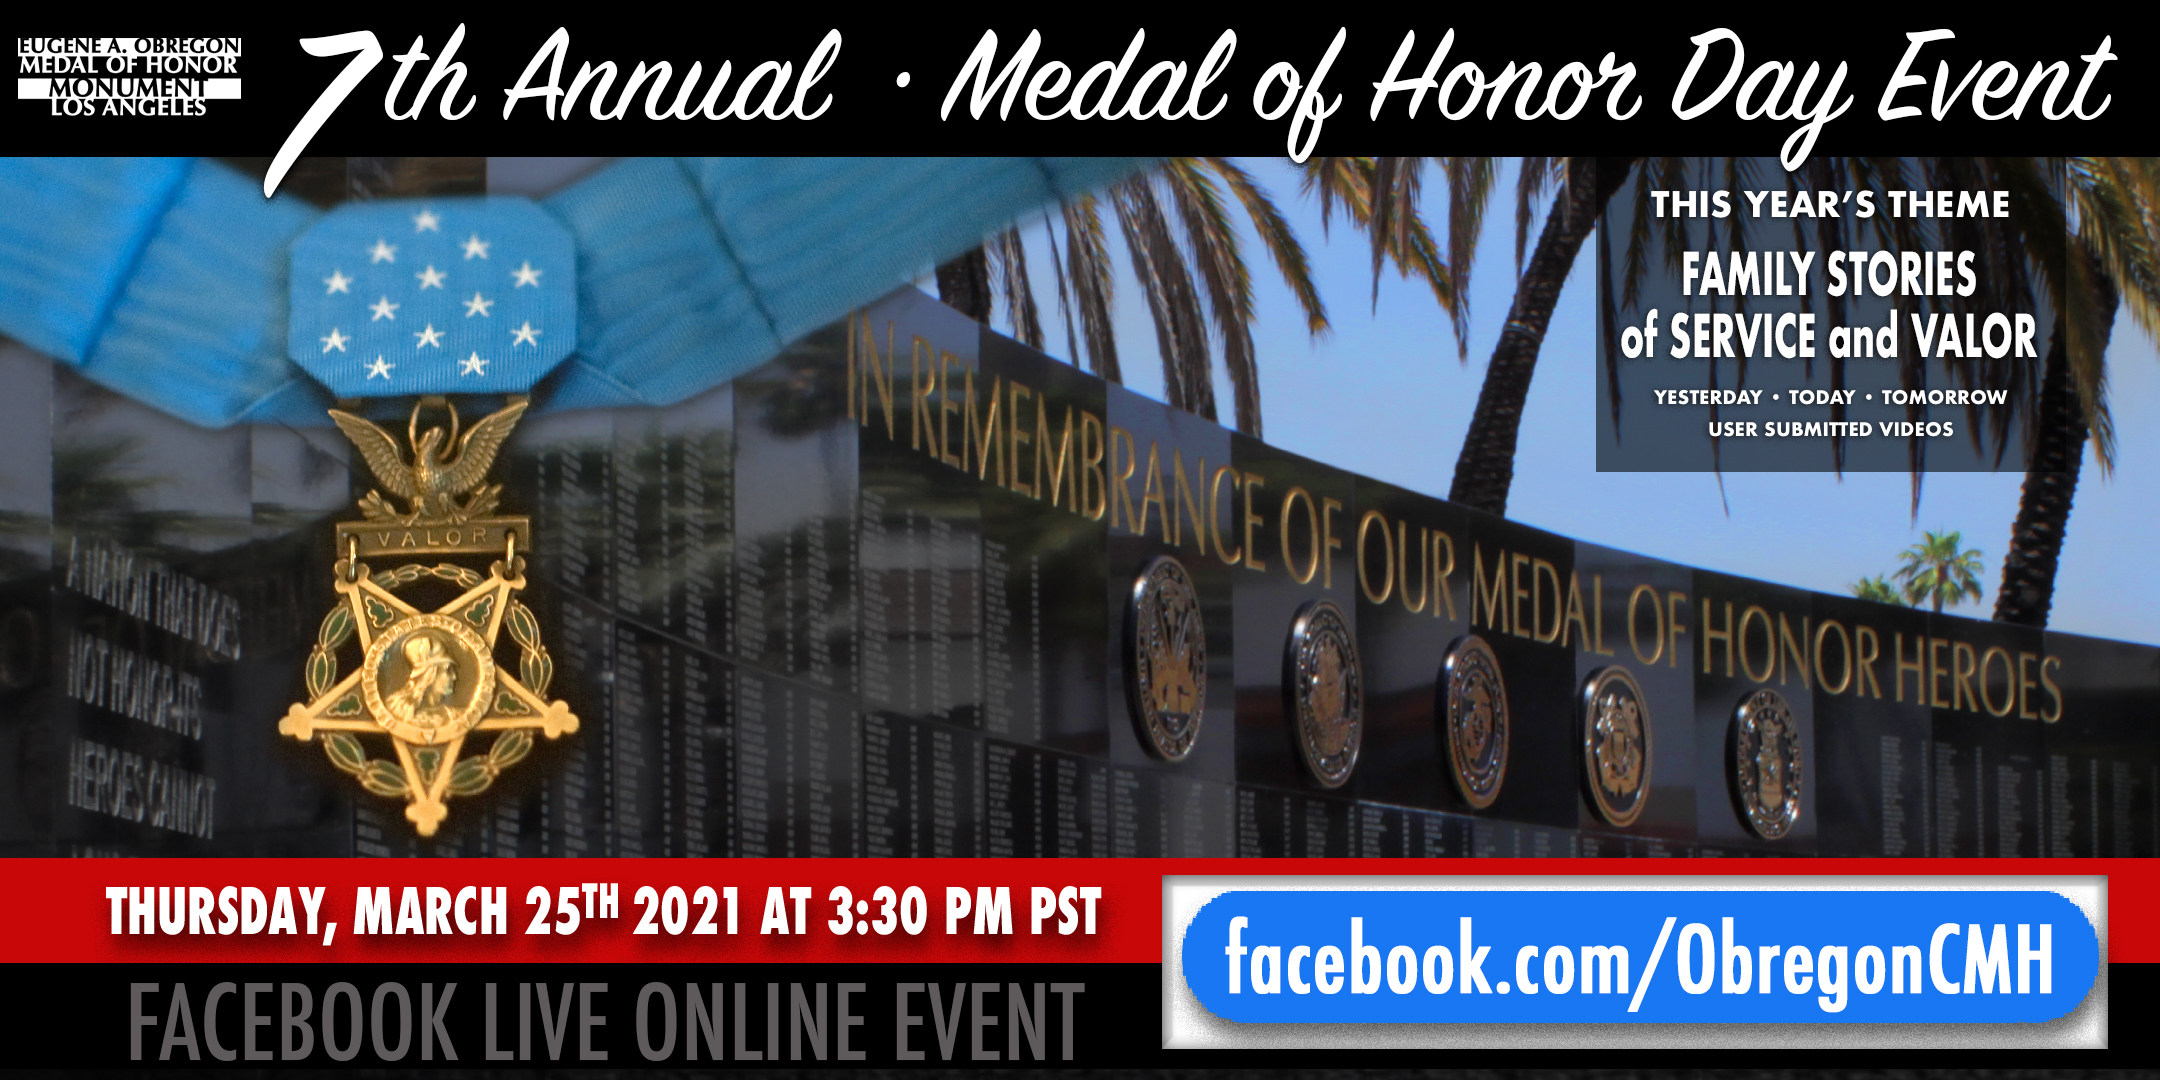 medal of honor day event